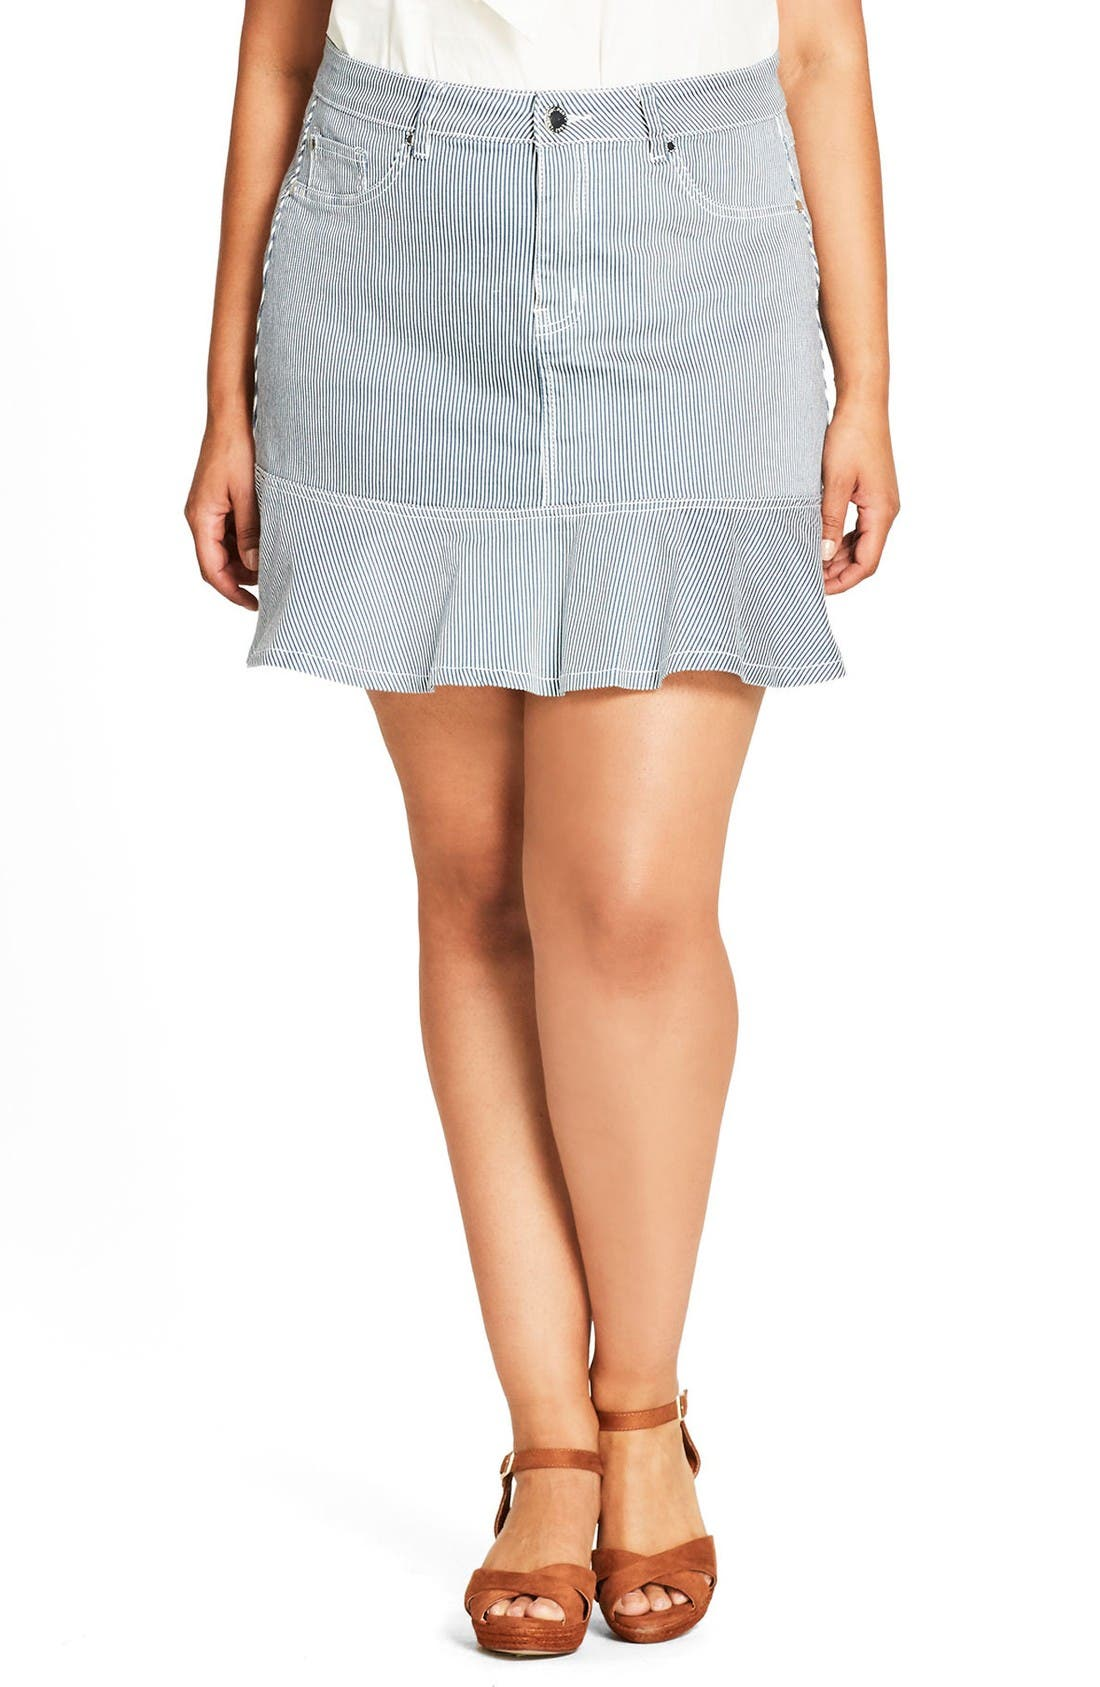 CITY CHIC Cute Ruffle Skirt